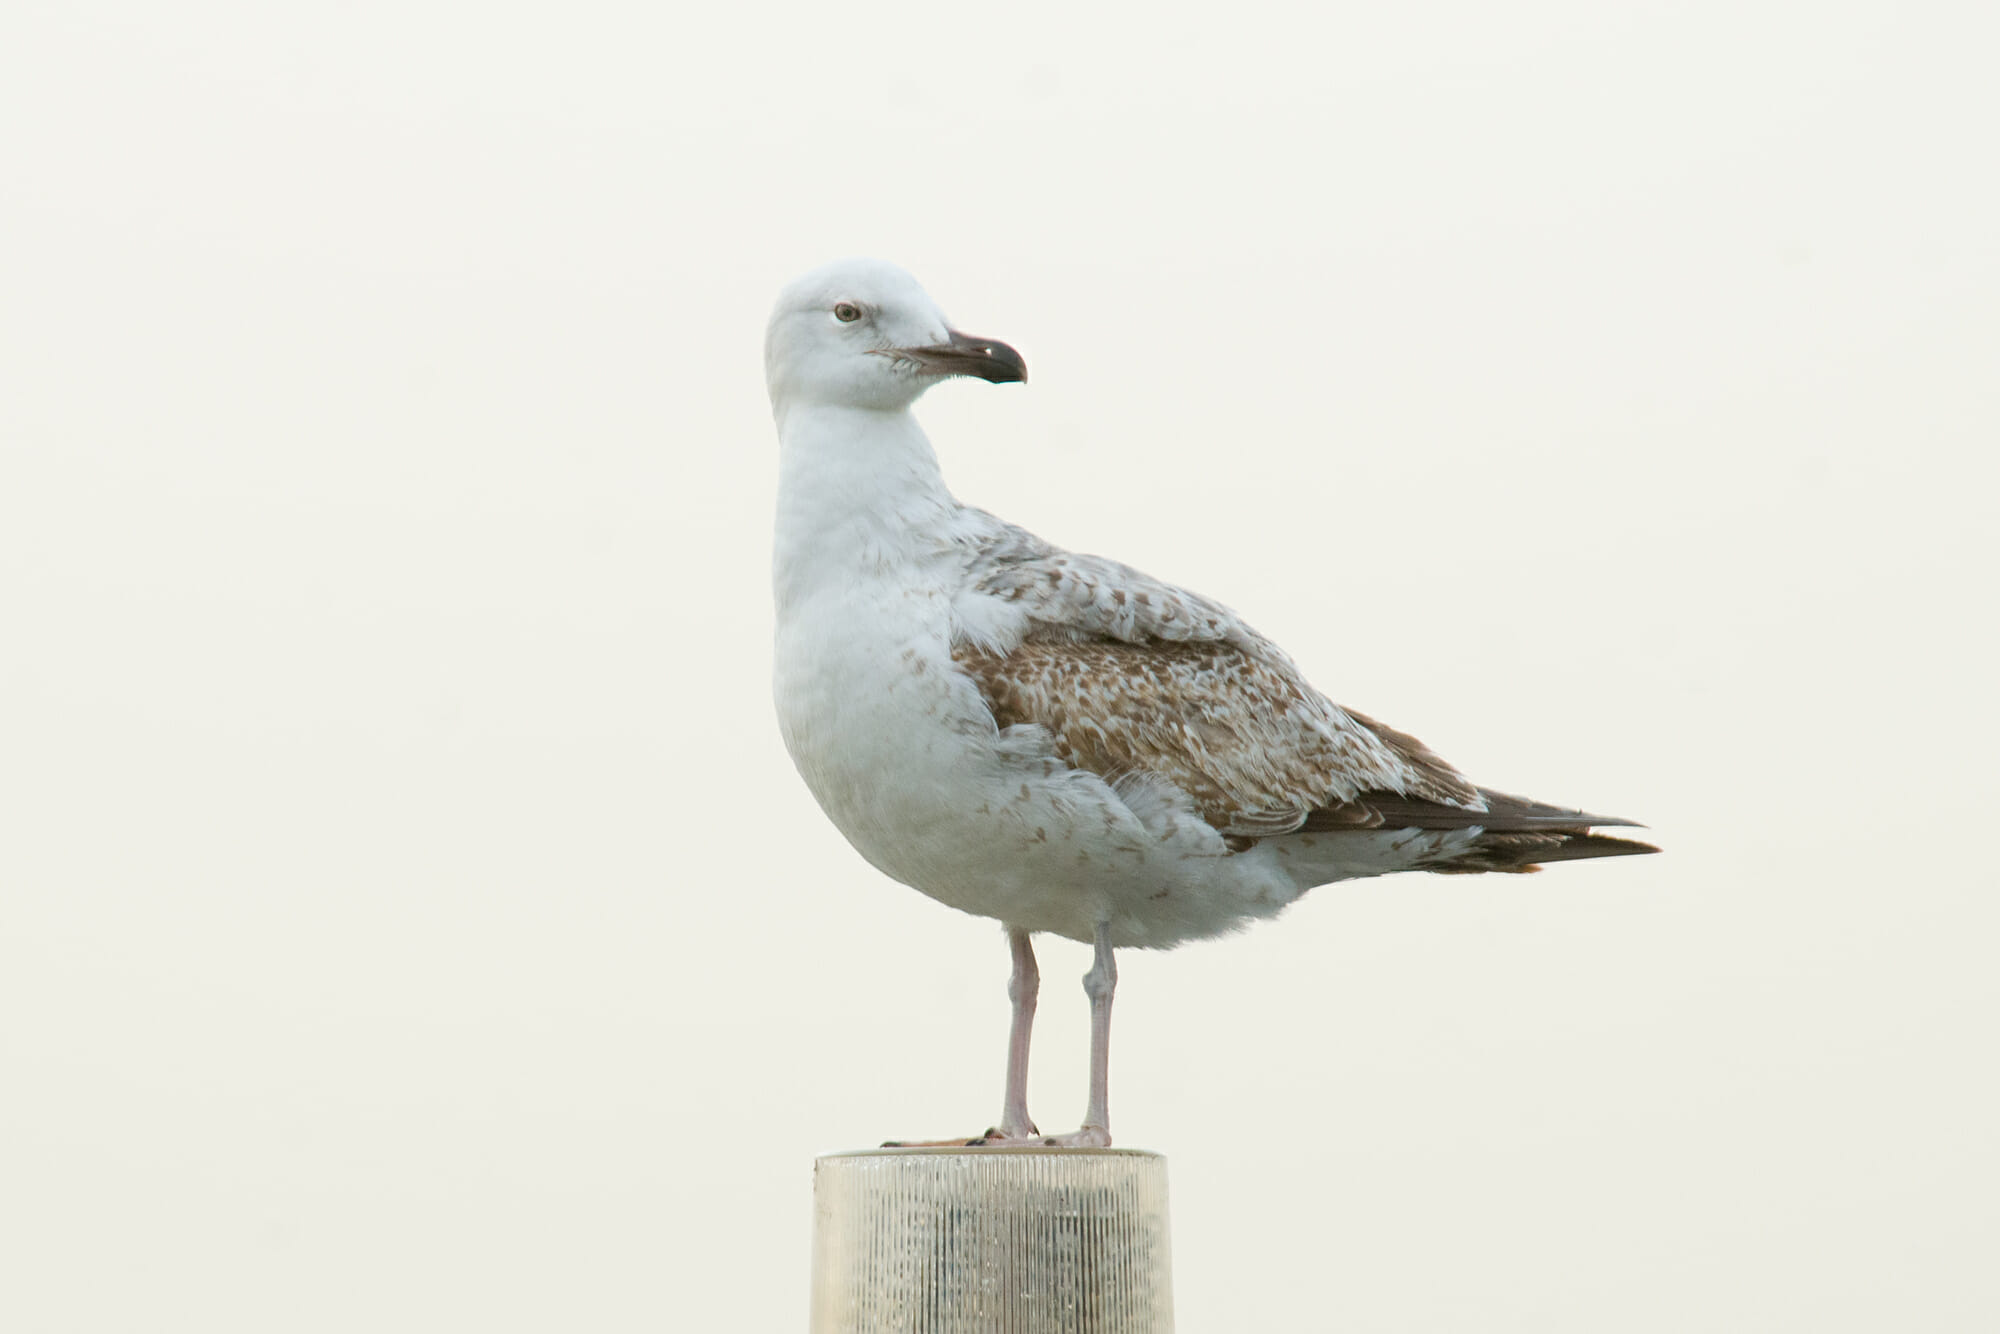 Juvenile Yellow-footed gull